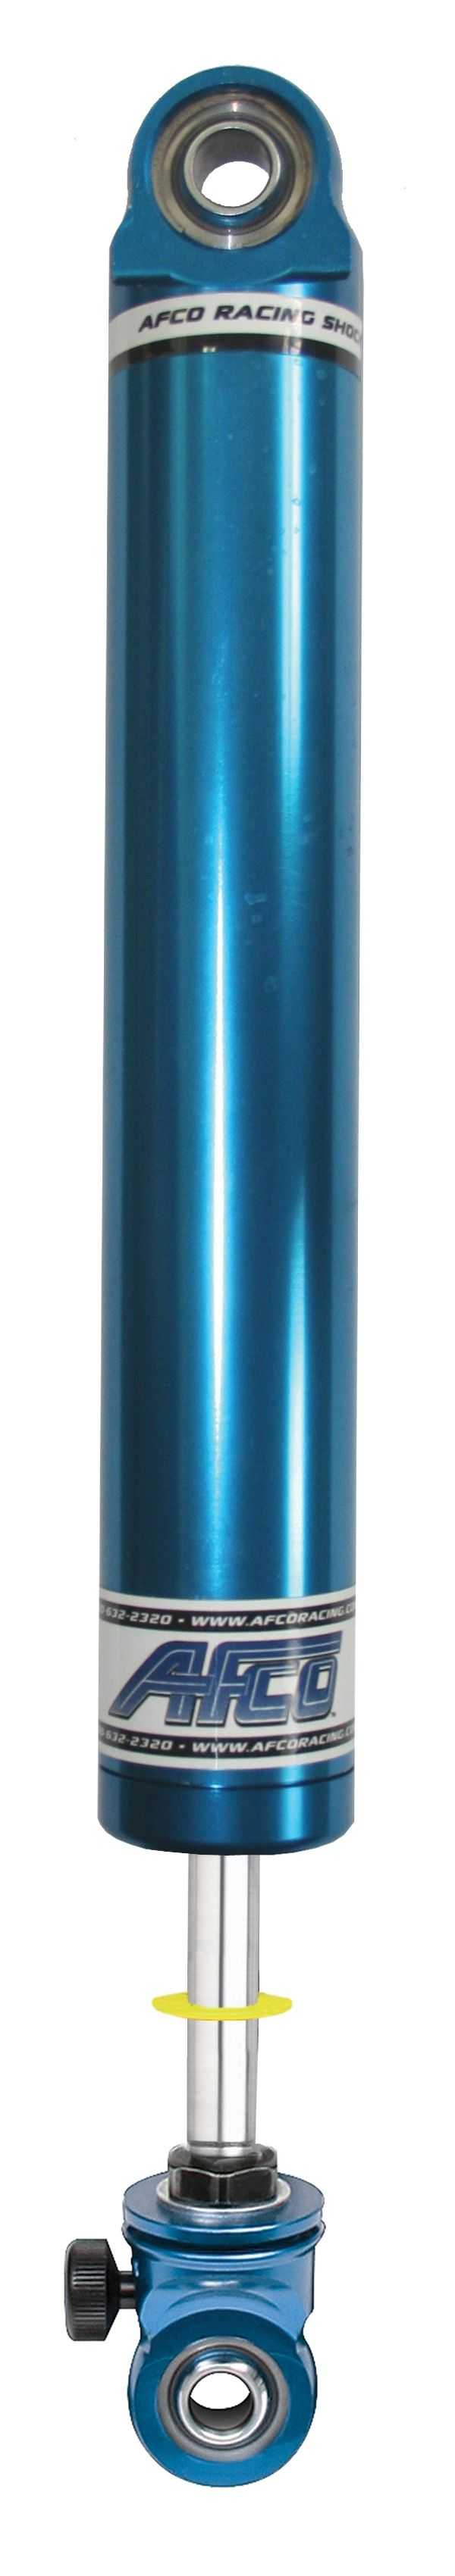 Aluminum Shock Twin Tube 16 Series Small Body 6 Inch Comp 2/Reb 2-5 Smooth